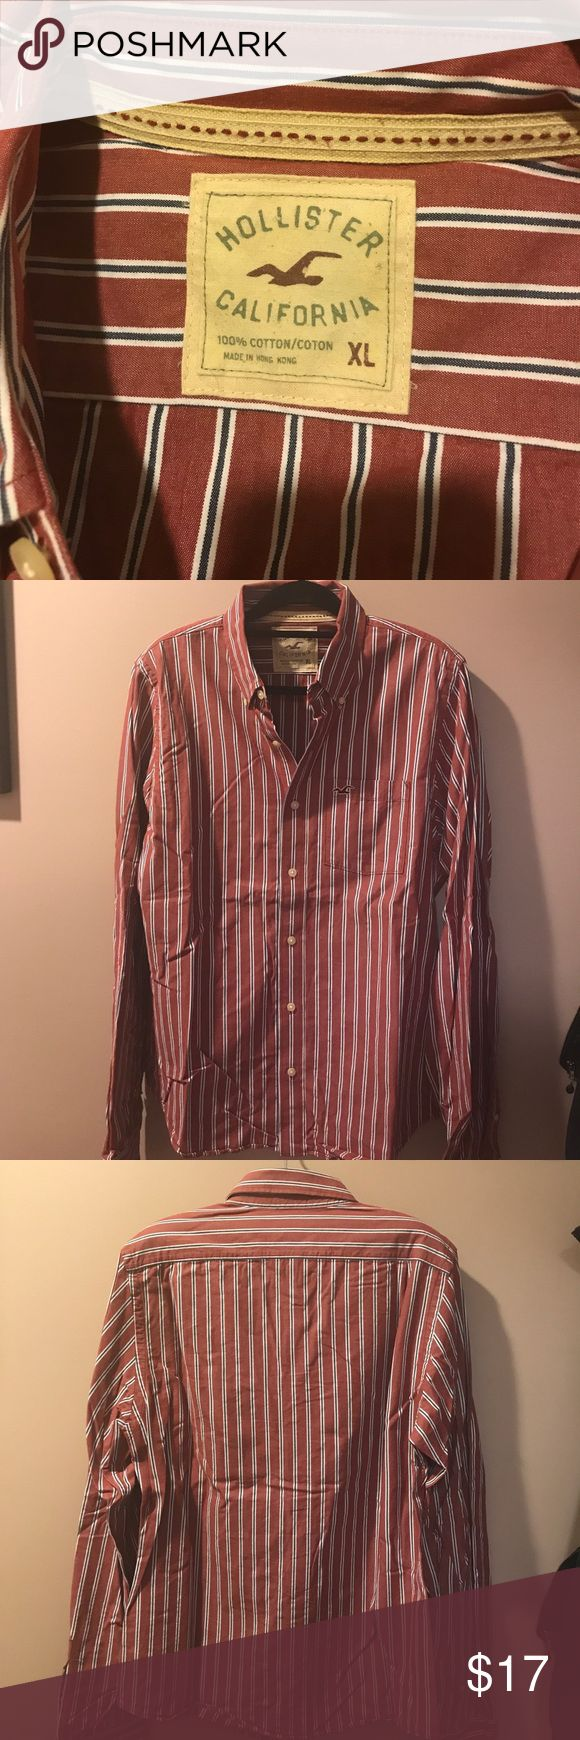 Hollister California Button Down Striped Shirt Hollister California Button Down Shirt. Dark red with white and navy stripes with Button down collar. Gently used but in excellent condition. From smoke free house. Hollister Shirts Casual Button Down Shirts